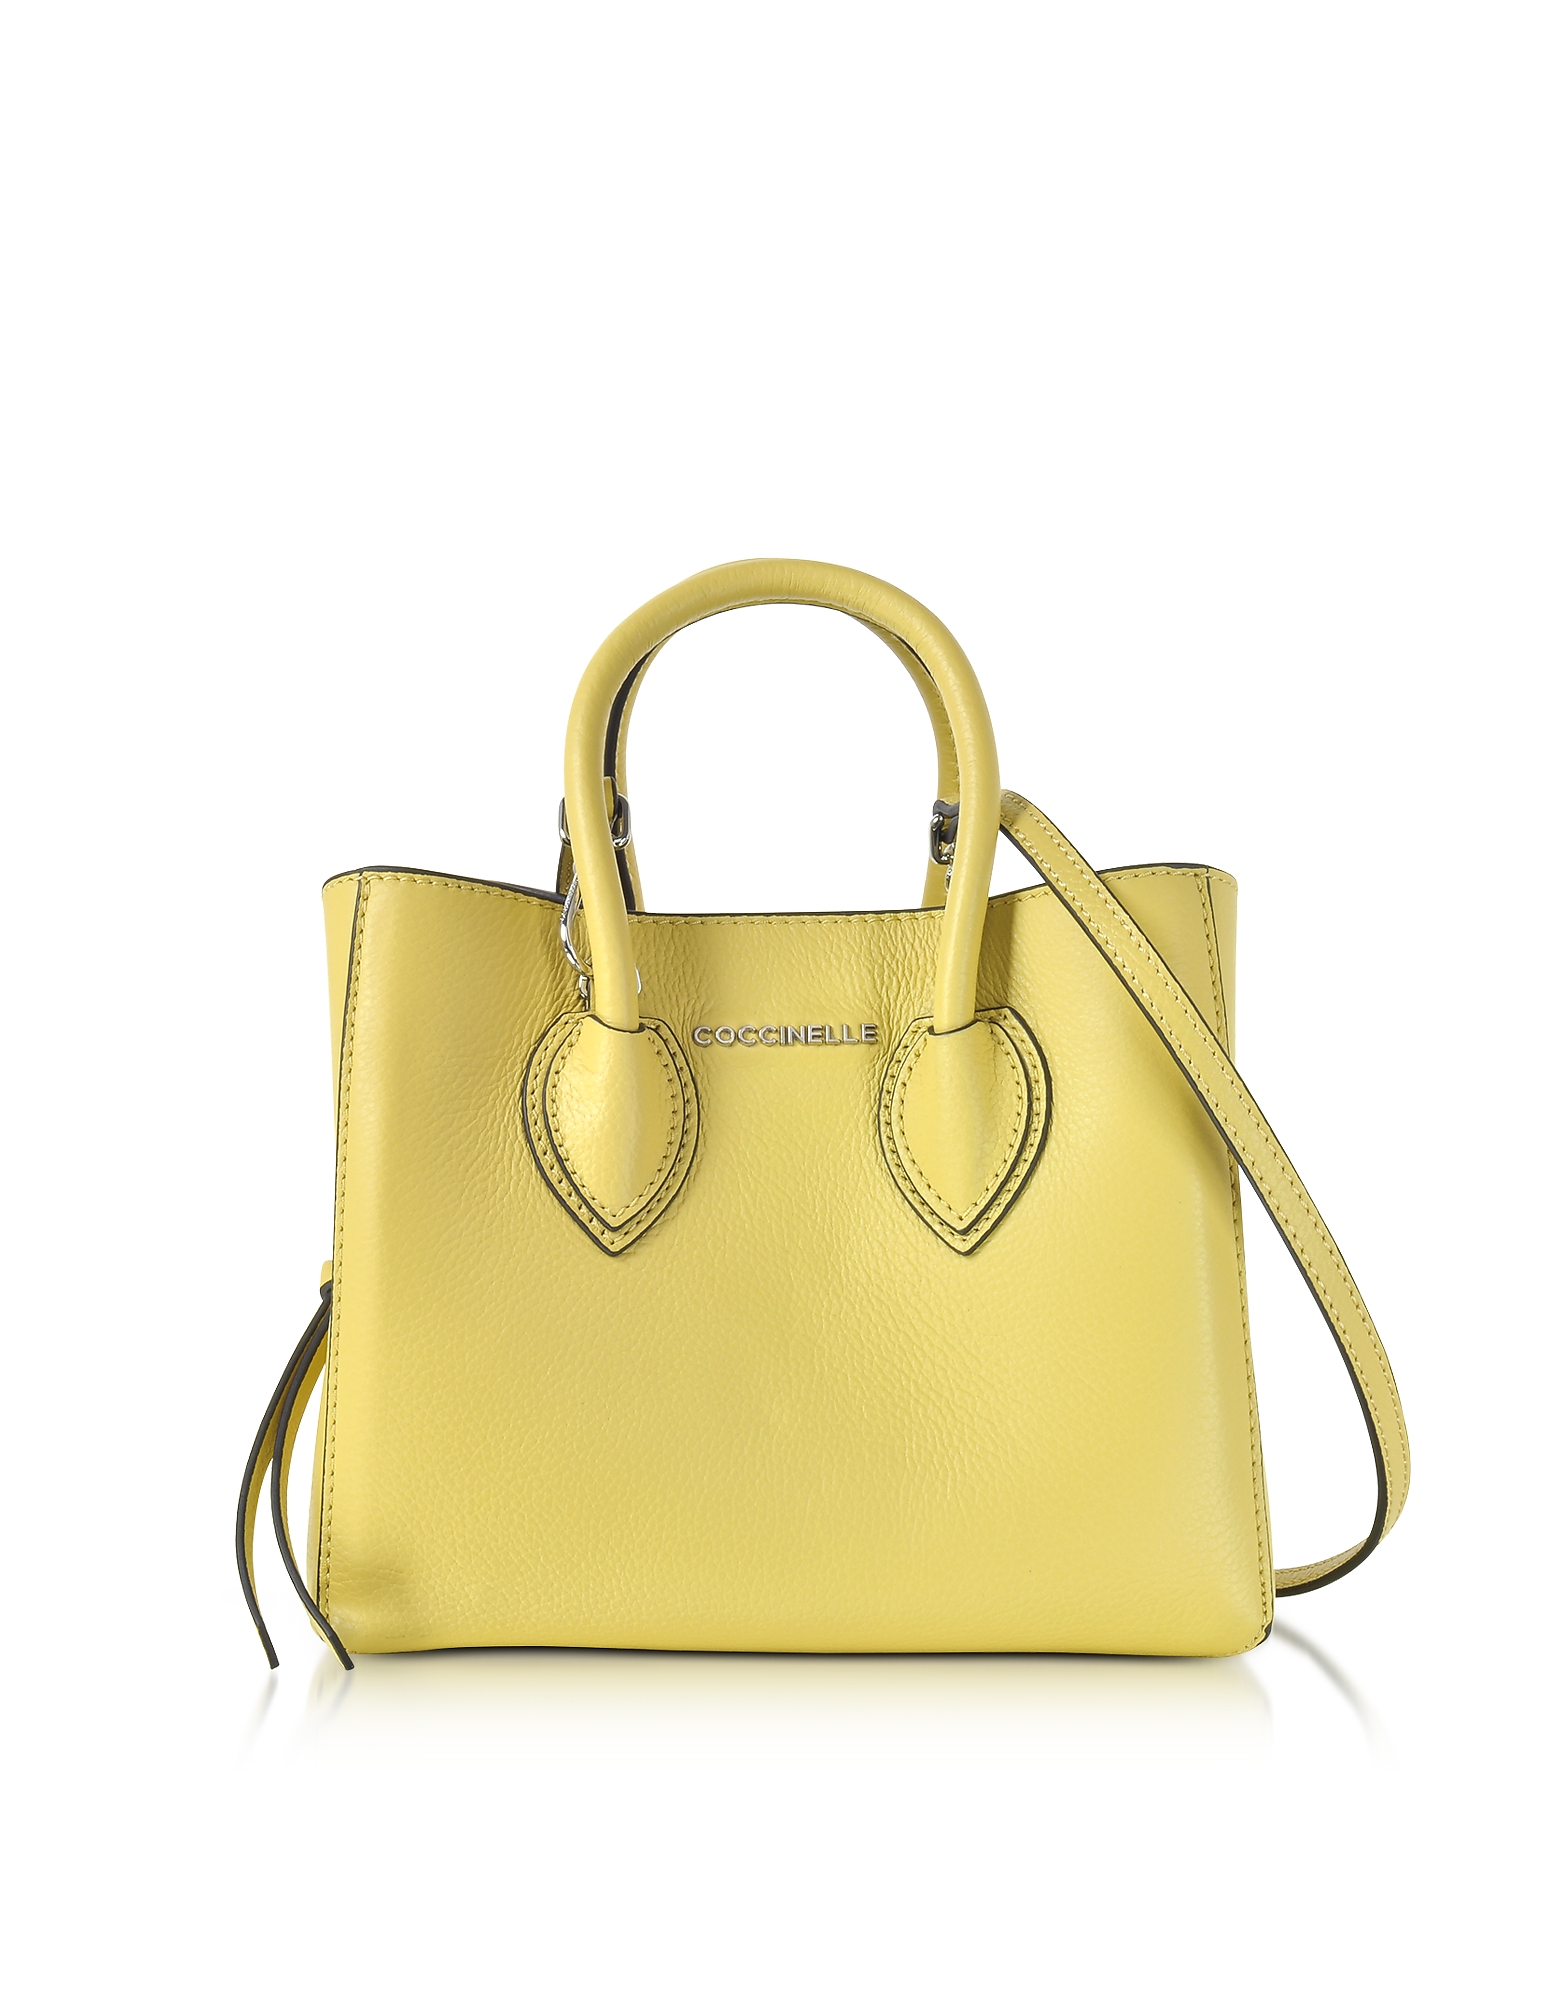 Coccinelle Handbags, Farisa Pebbled Leather Mini Tote Bag